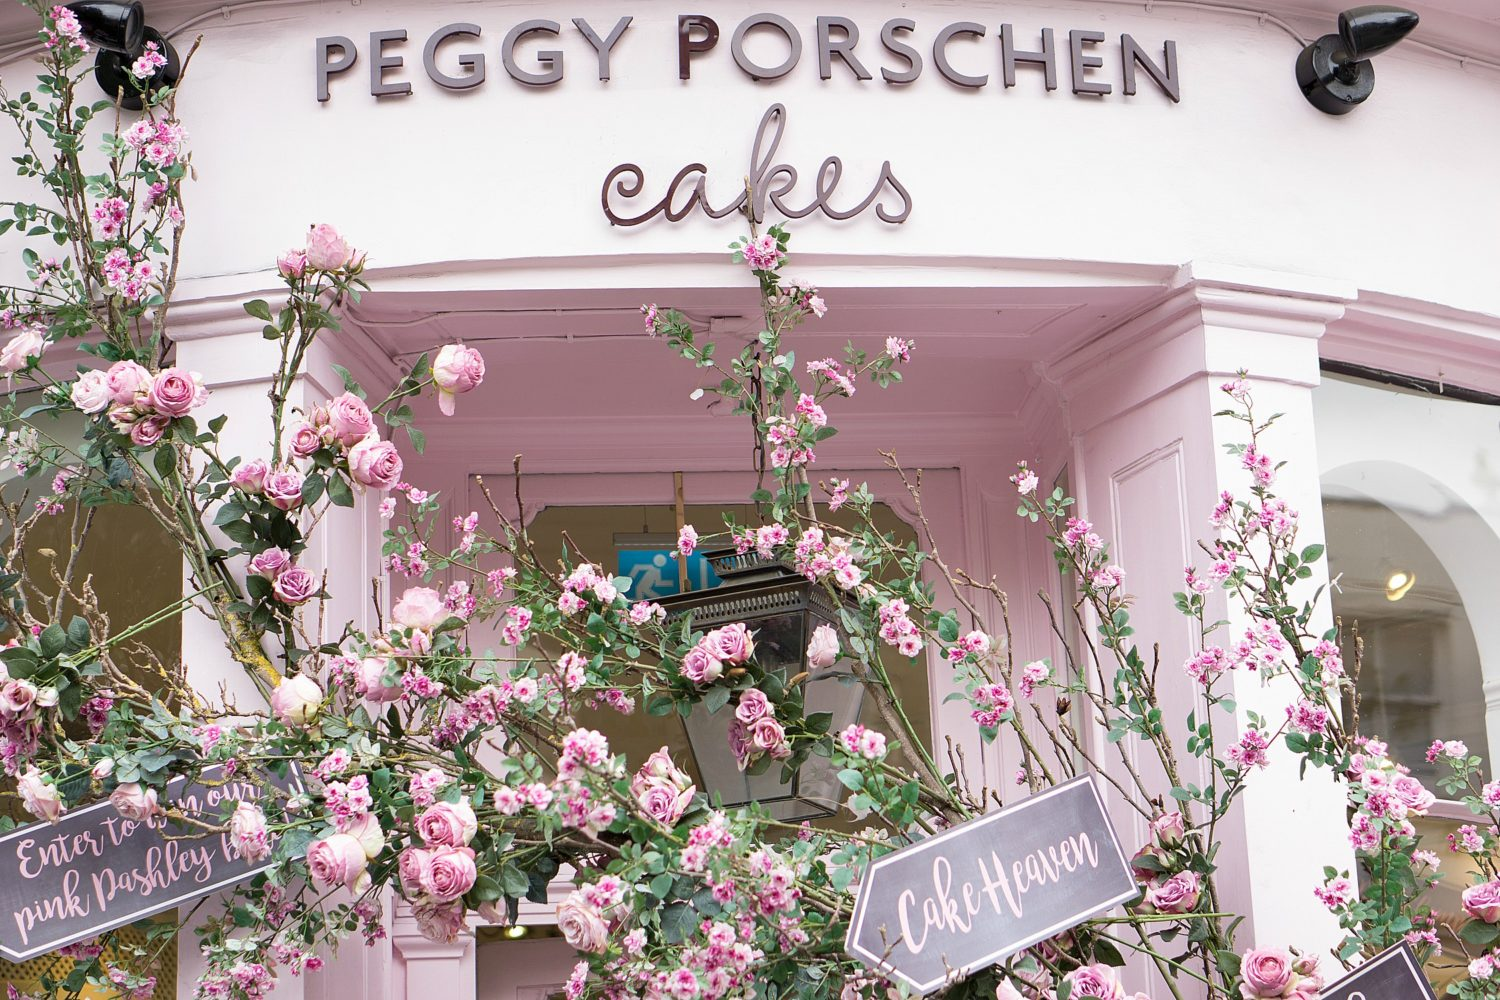 Peggy Porschen Cakes London 2017